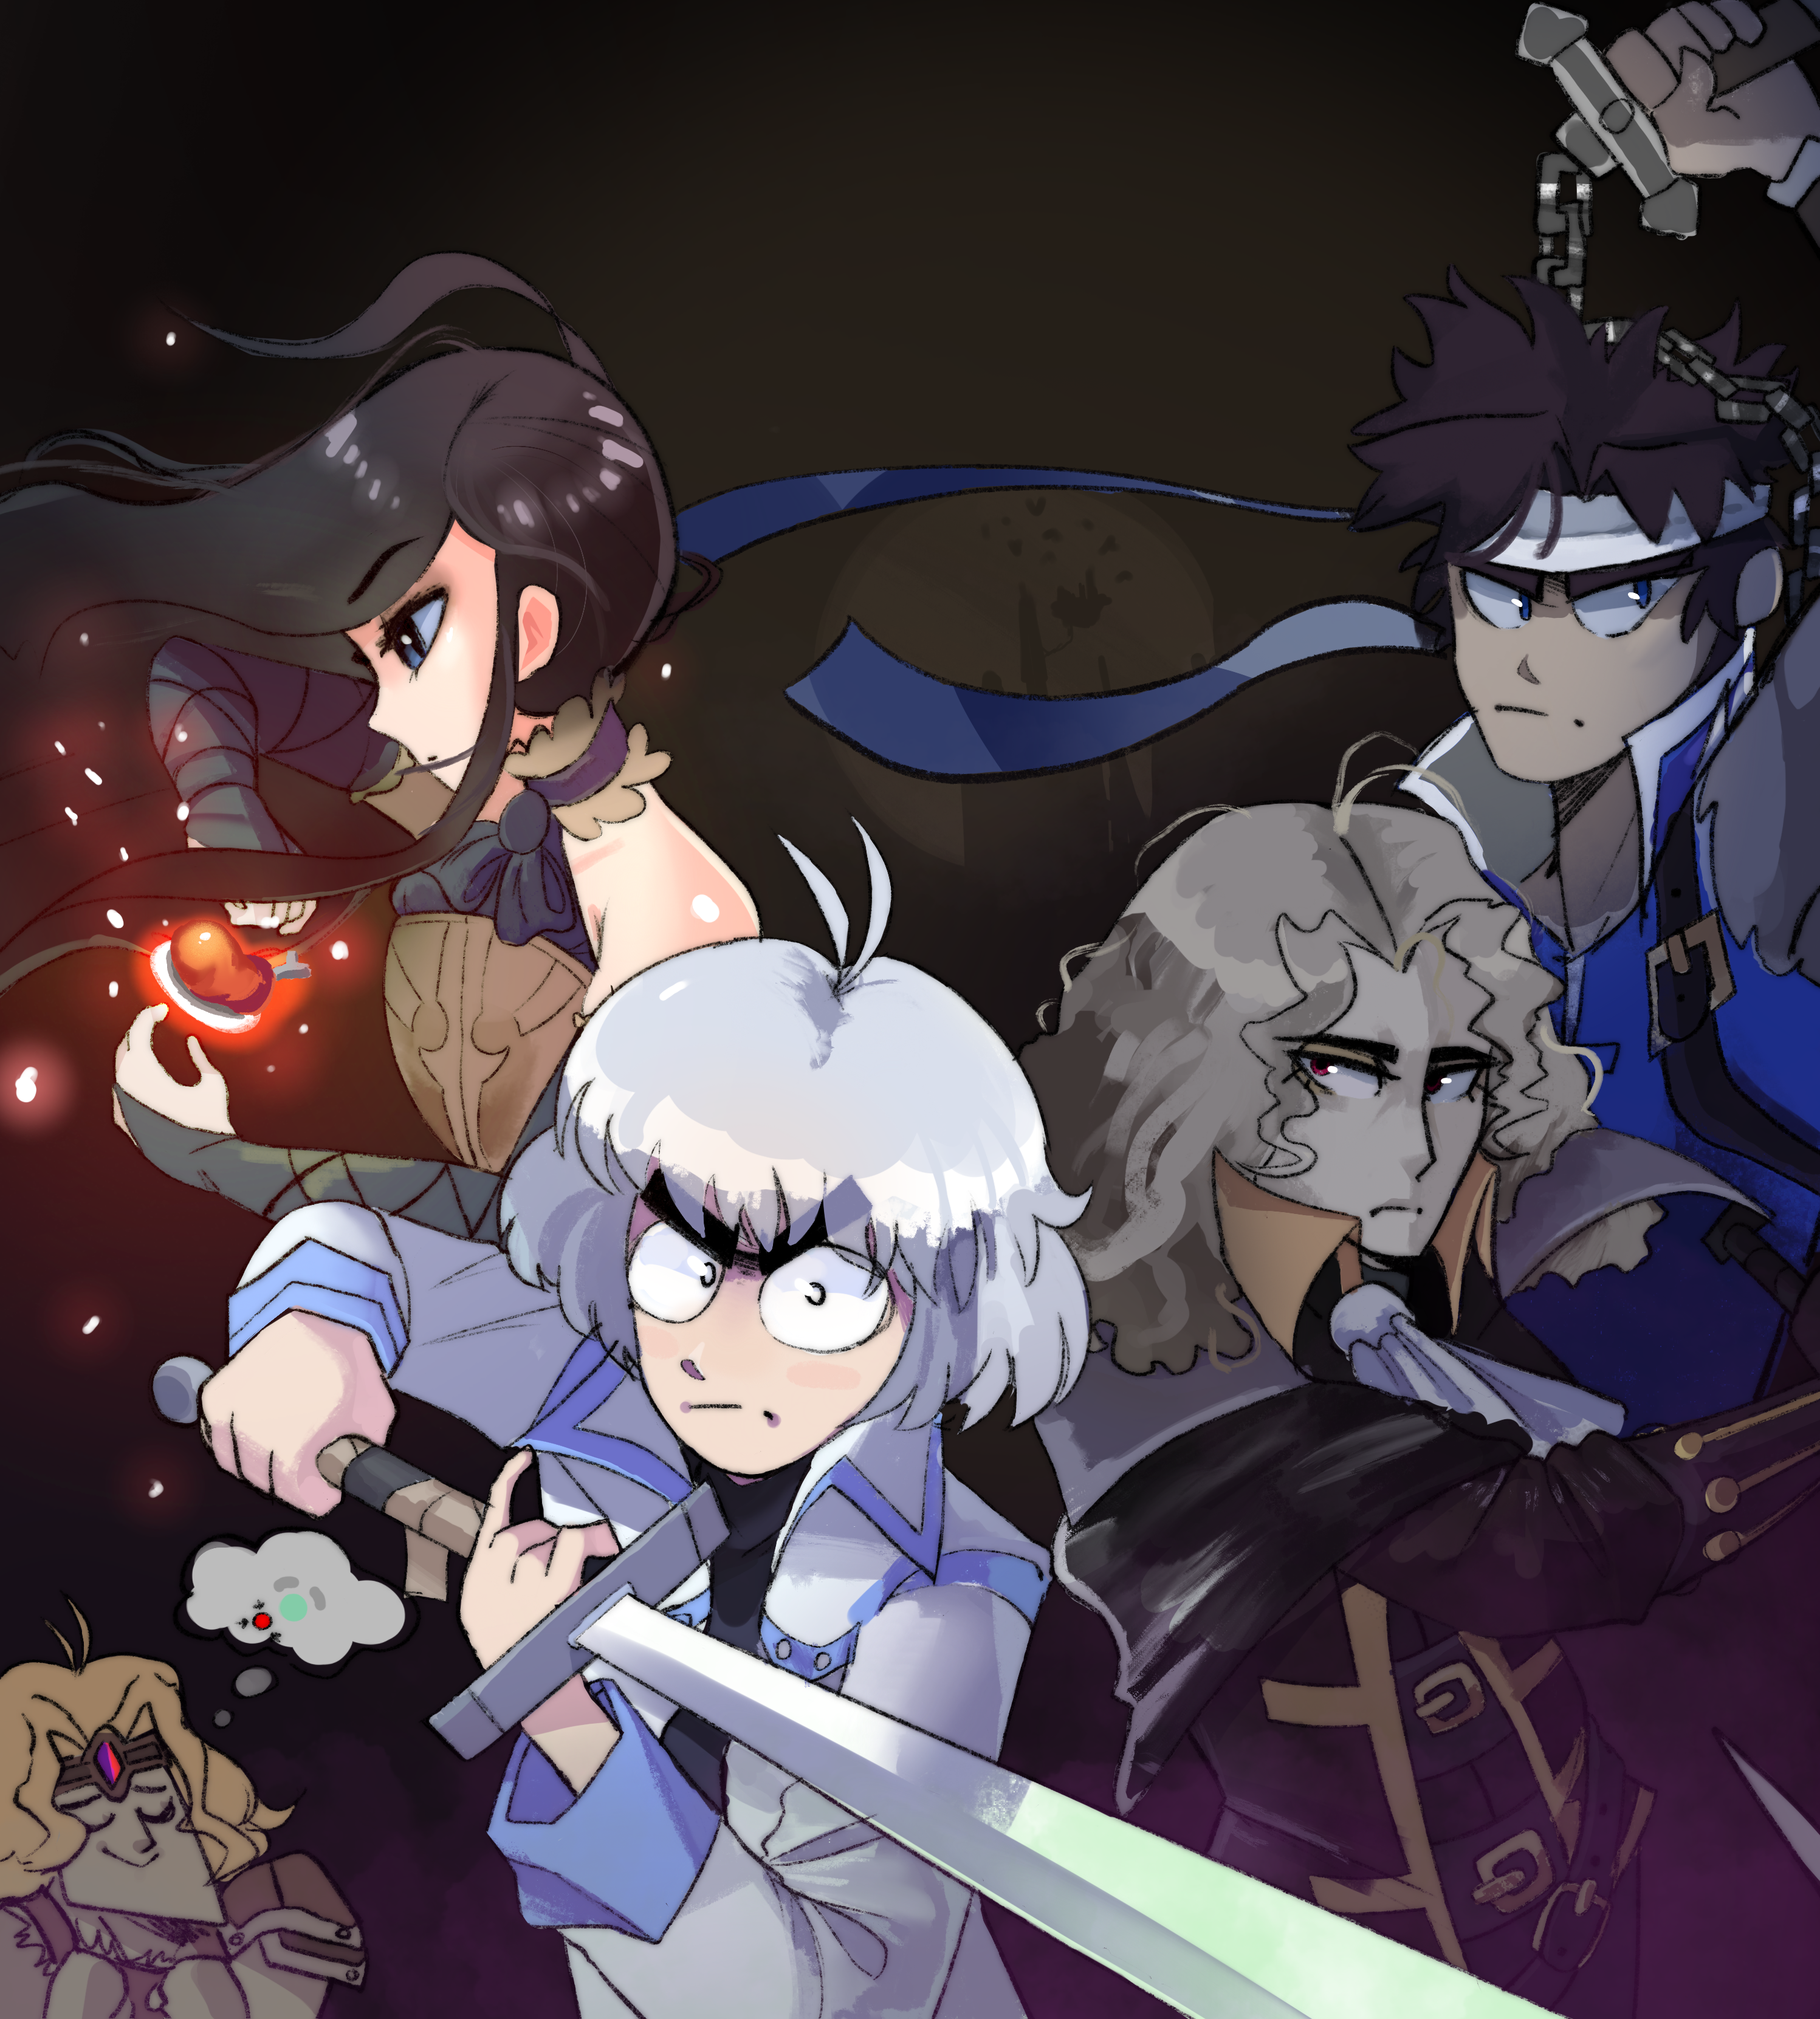 Castlevania Animation Collab (promo art)